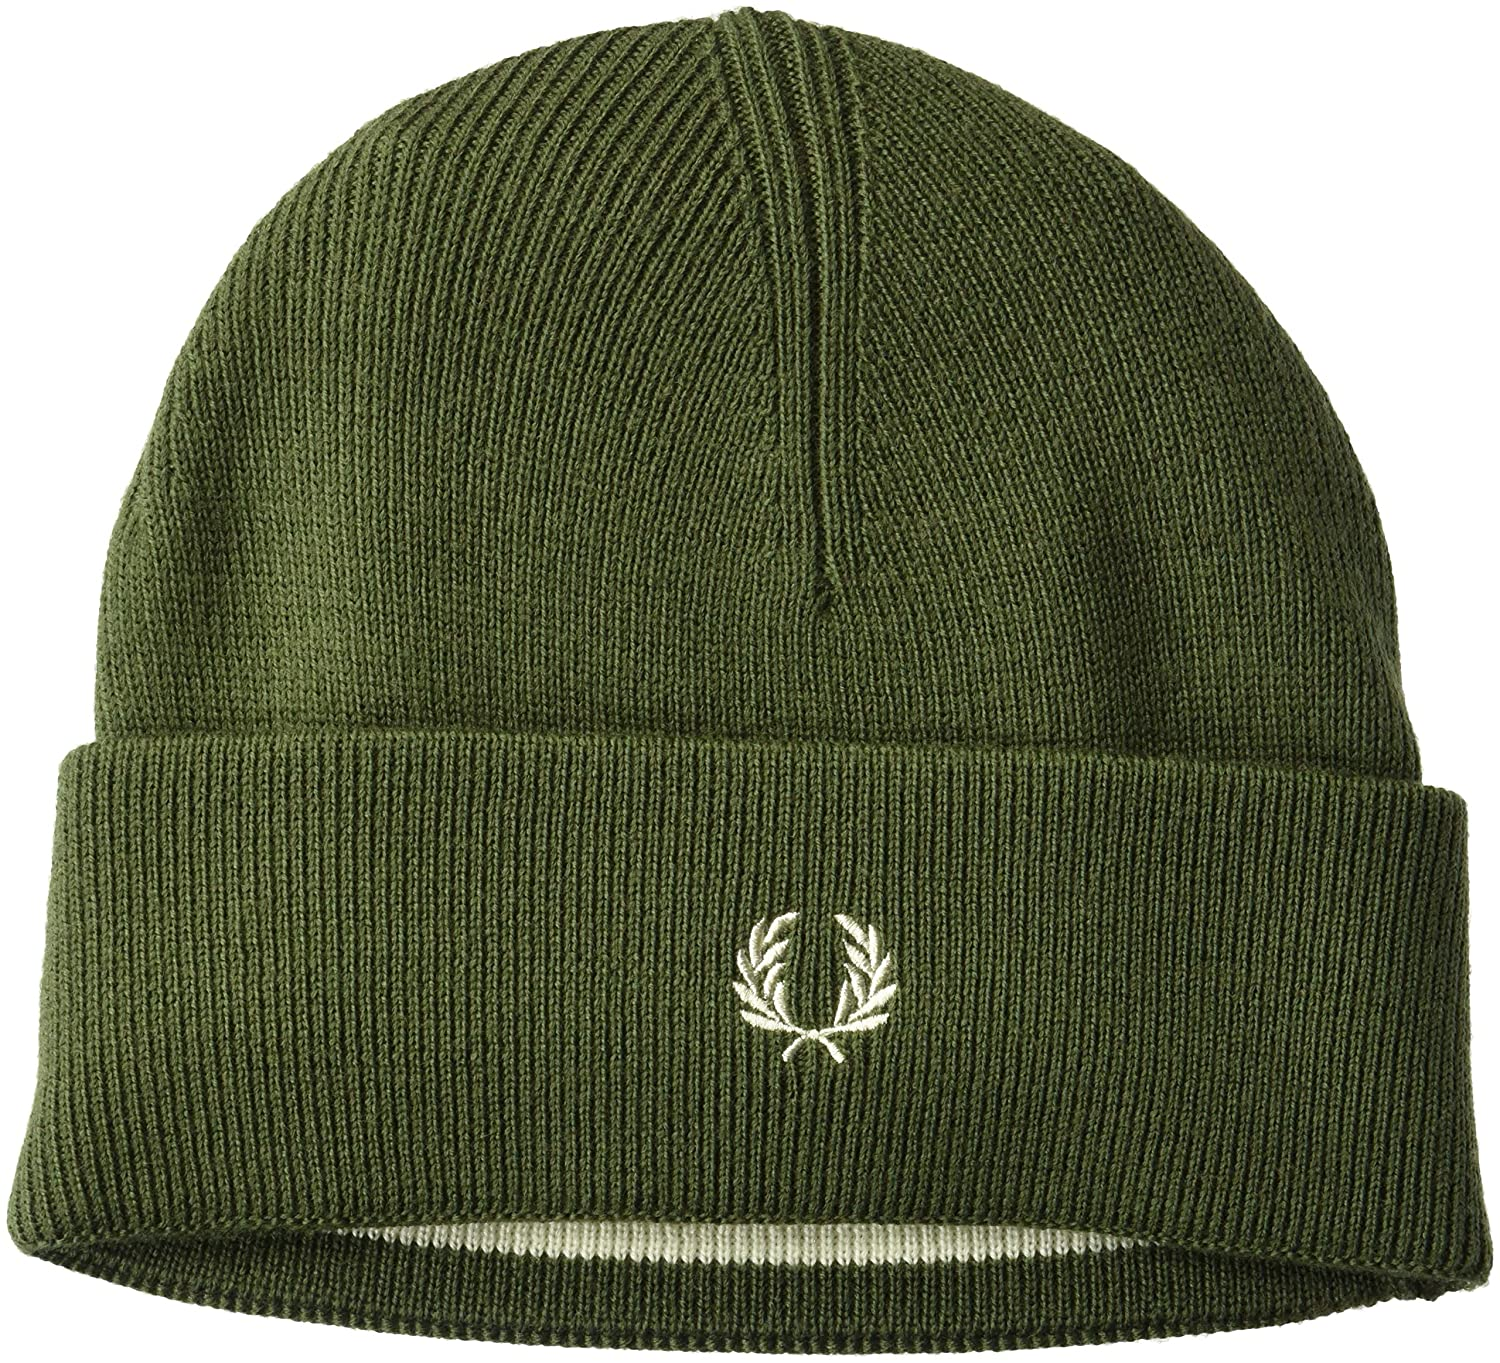 Fred Perry Men's Merino Wool Beanie Navy/Ecru ONE Size C9102